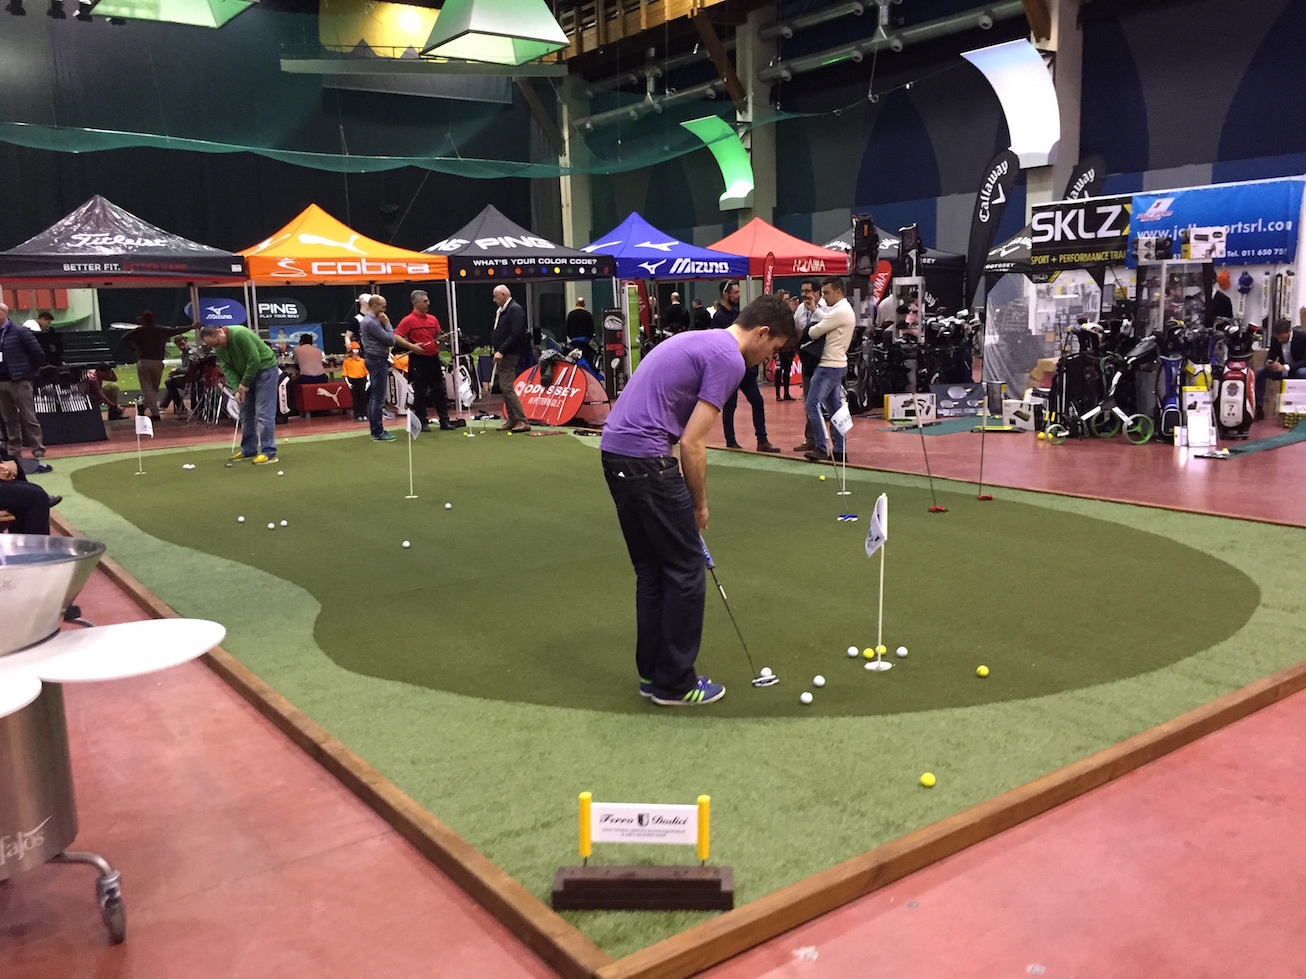 Fiera del Golf Parma 2015 le foto ed i video di Italian Golf Show e le prove dei materiali39 - Fiera del Golf Parma: le foto ed i video di Italian Golf Show